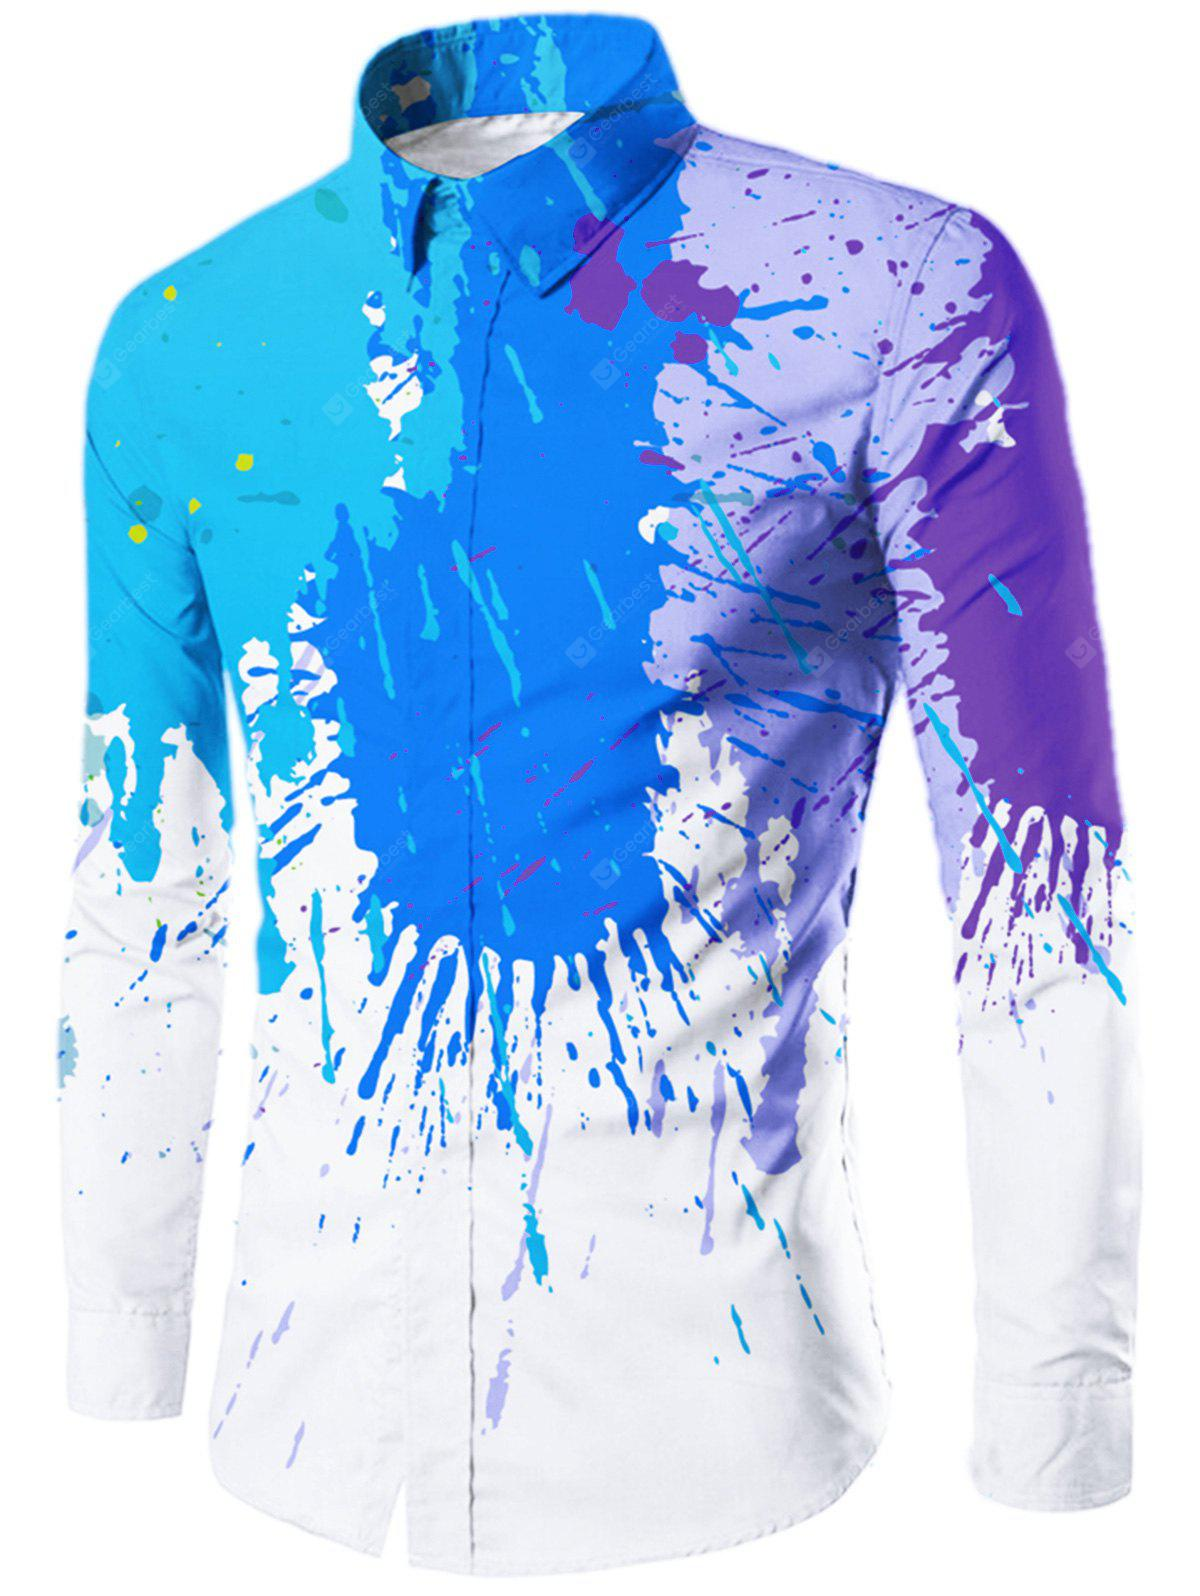 Splatter Painted Turn-down Collar Shirt